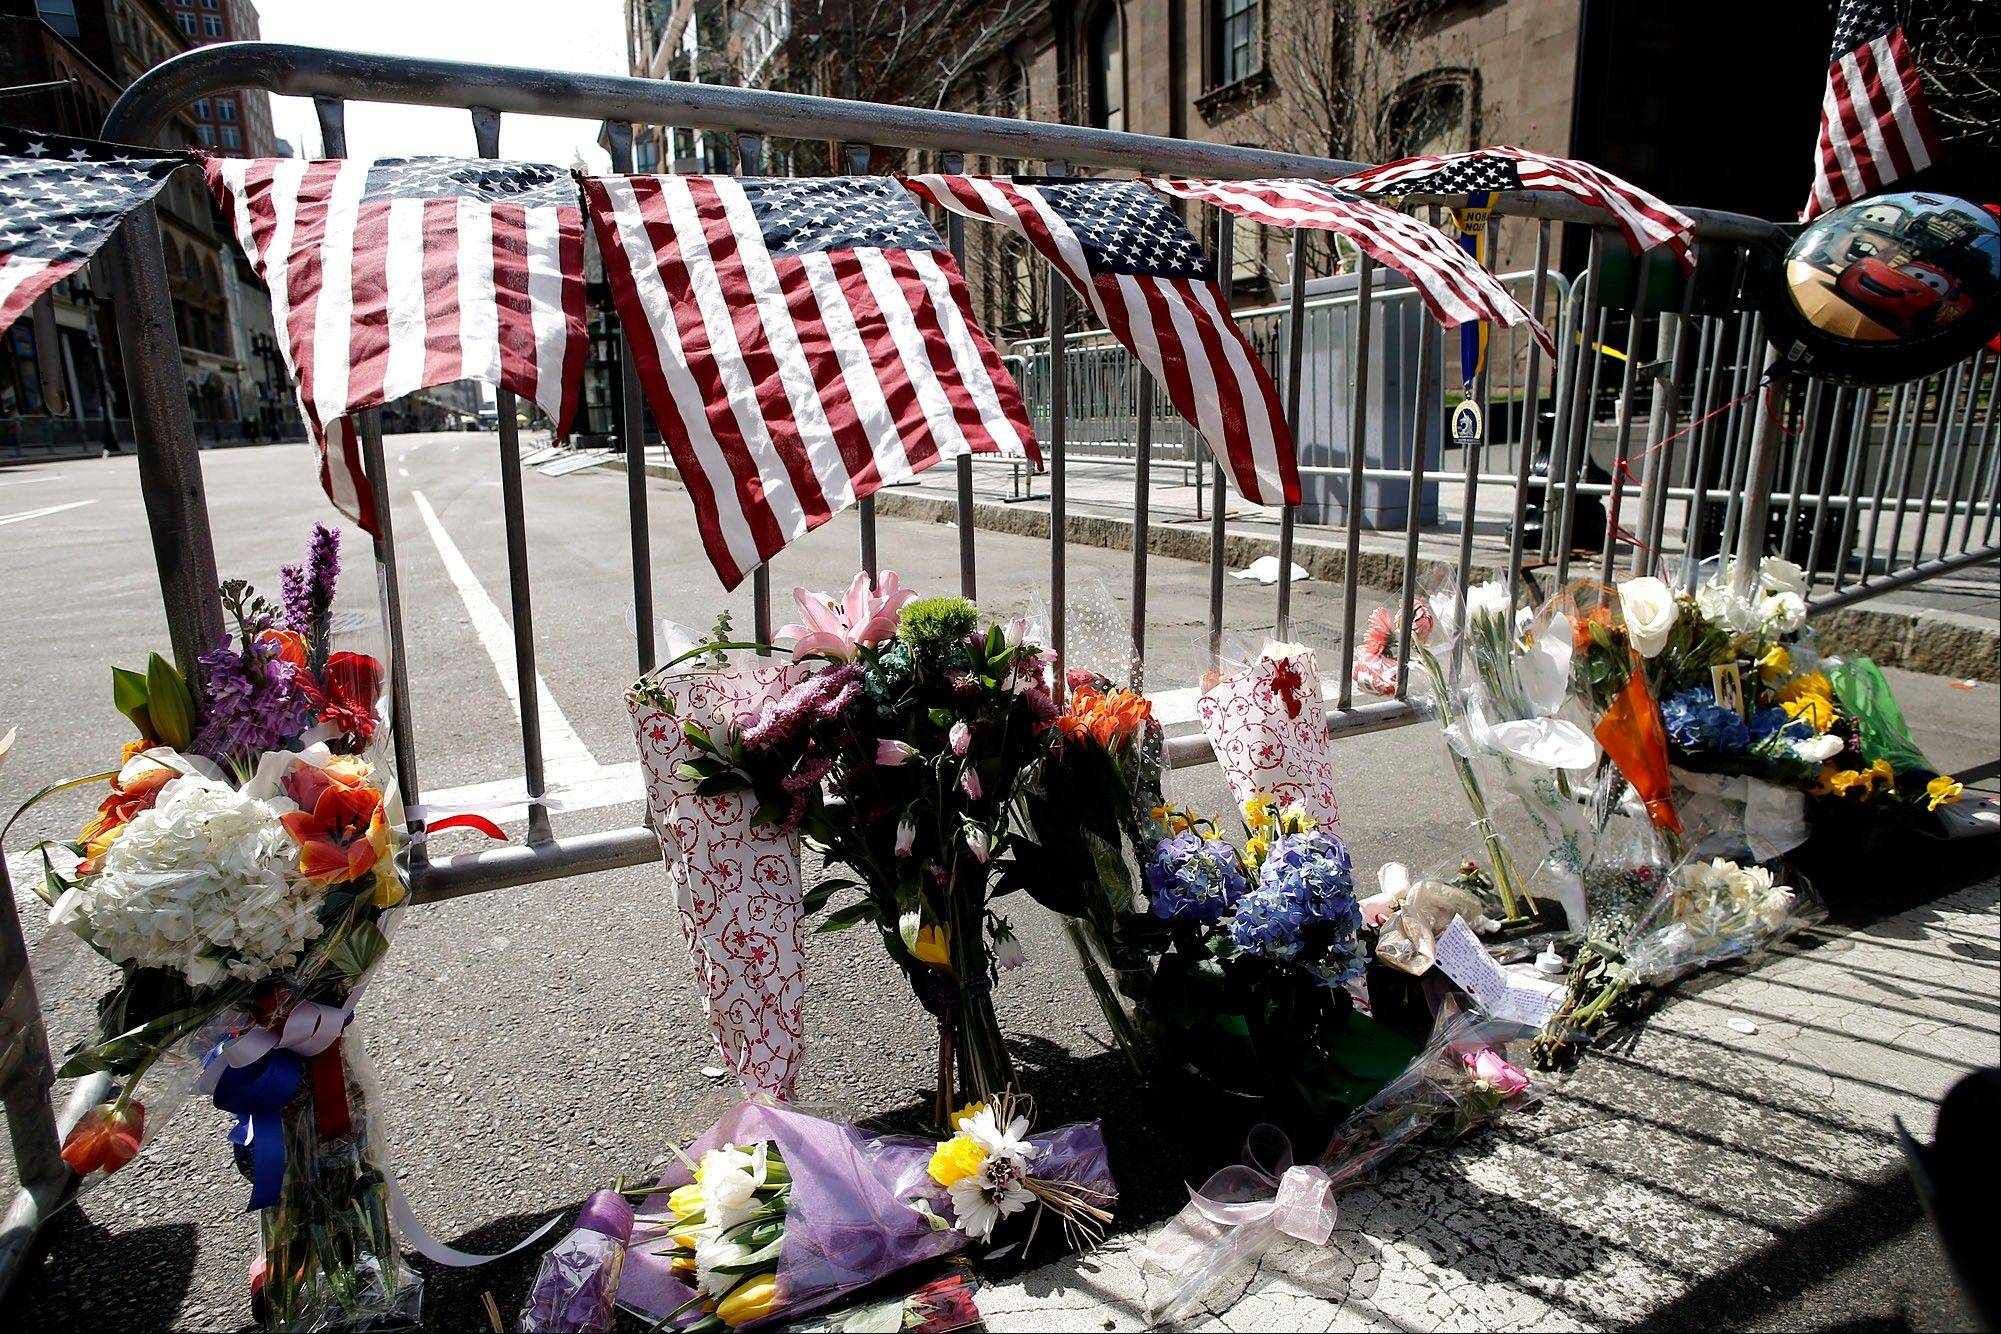 Flowers sit at a police barrier Tuesday near the finish line of the Boston Marathon in Boston. The bombs that ripped through the crowd at the Bosto